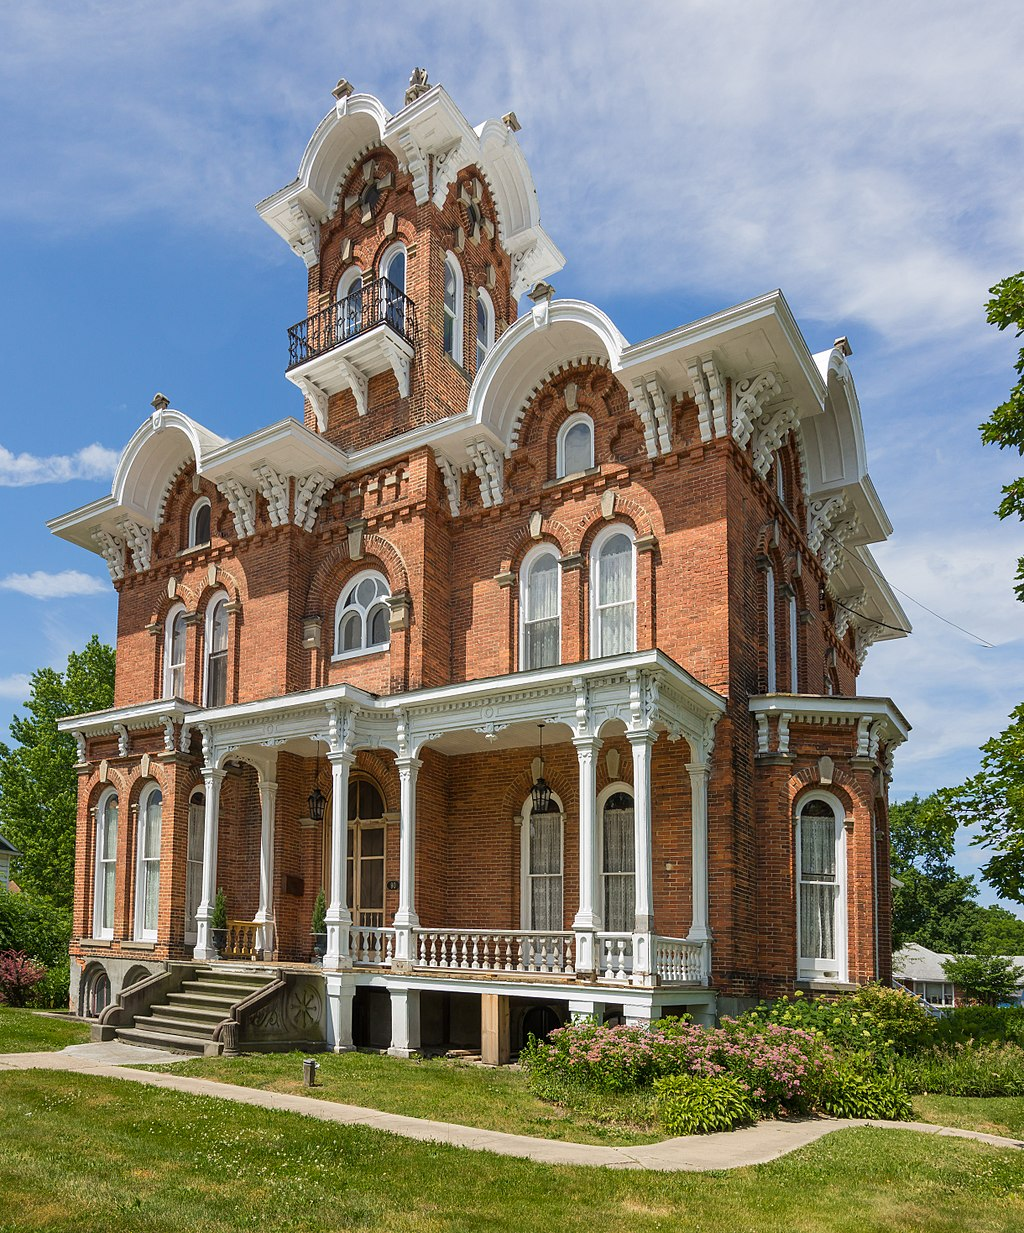 The Lanphere-Pratt House was built in the early 1870s by Alvin T. Lanphere. It is one of the town's most extravagant homes.